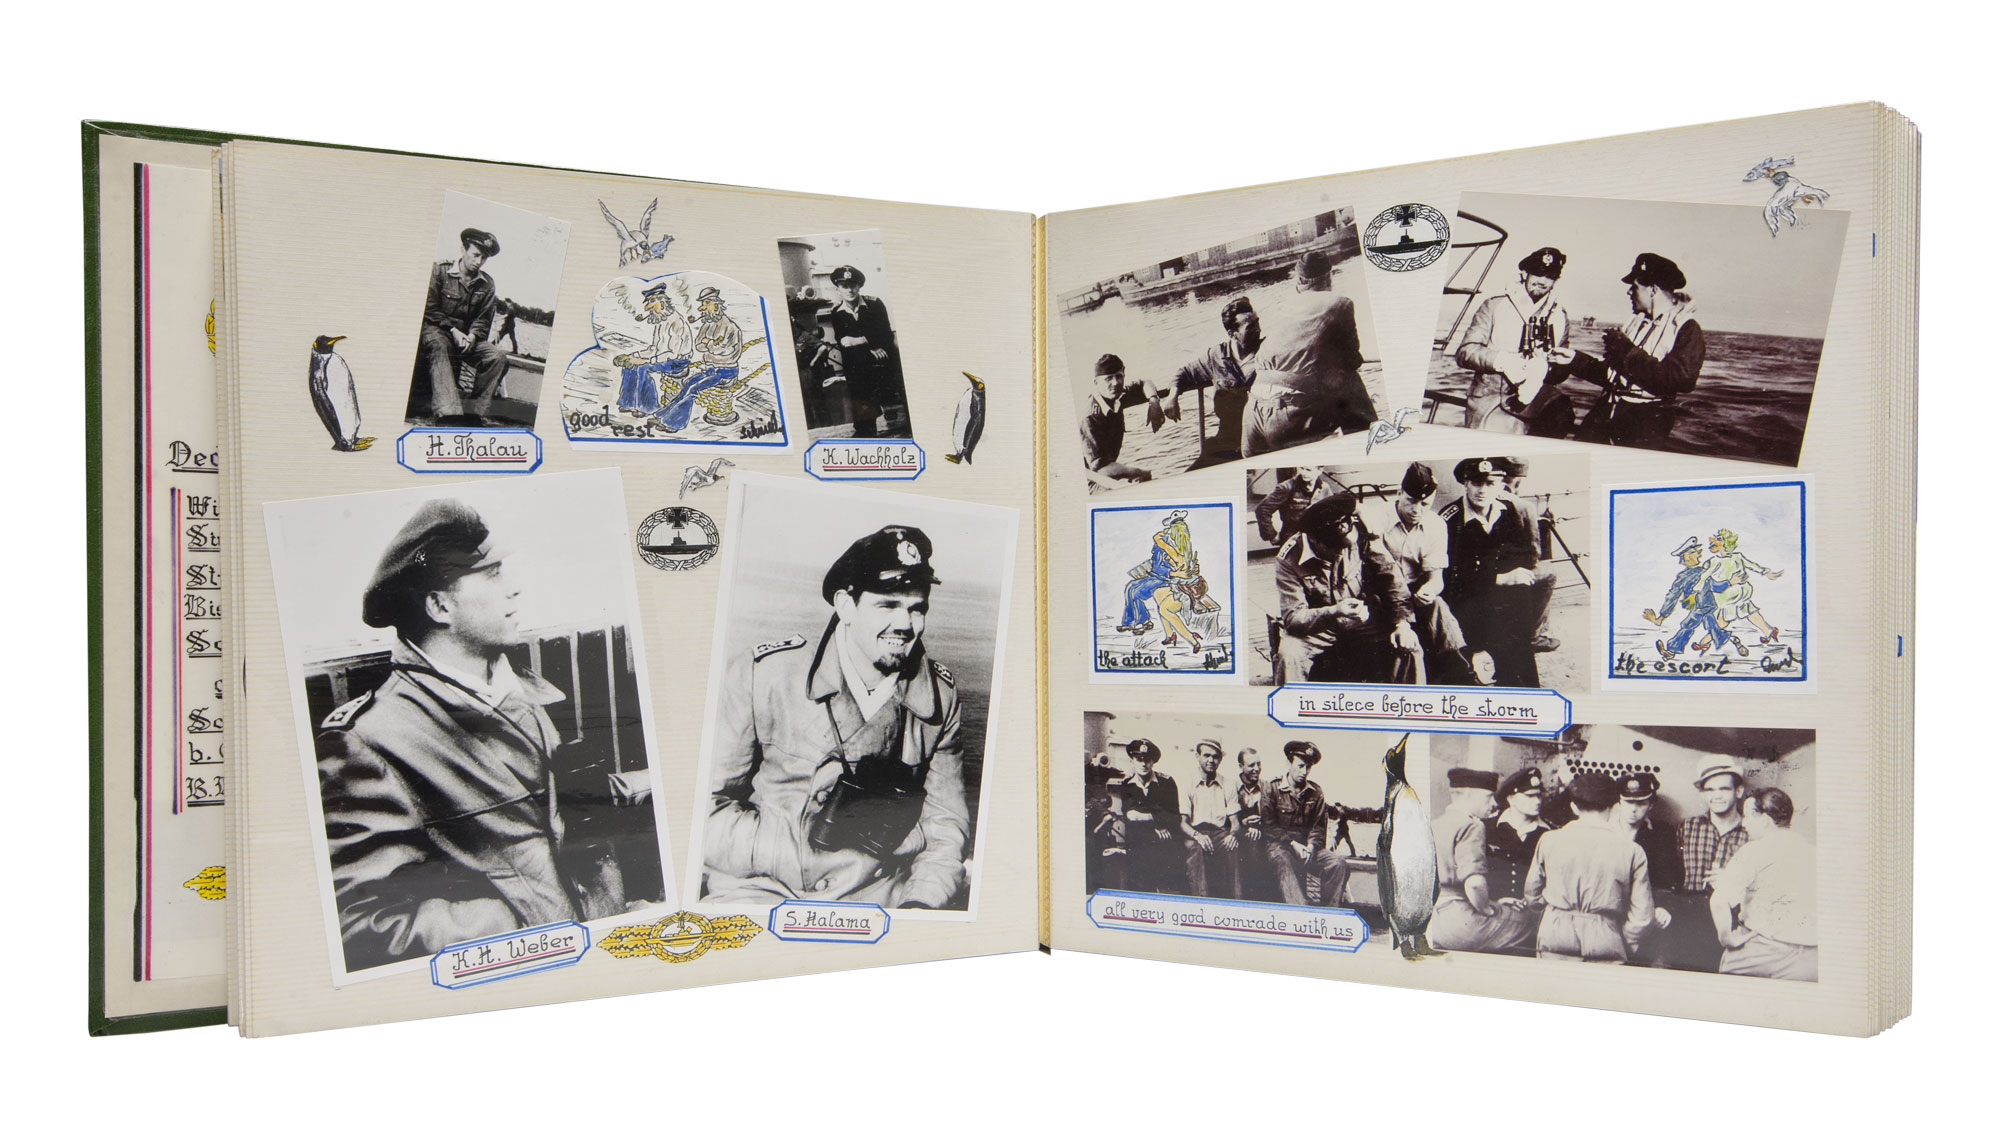 photograph of photograph album containing black and white snapshots of men in military uniform with cartoons and text